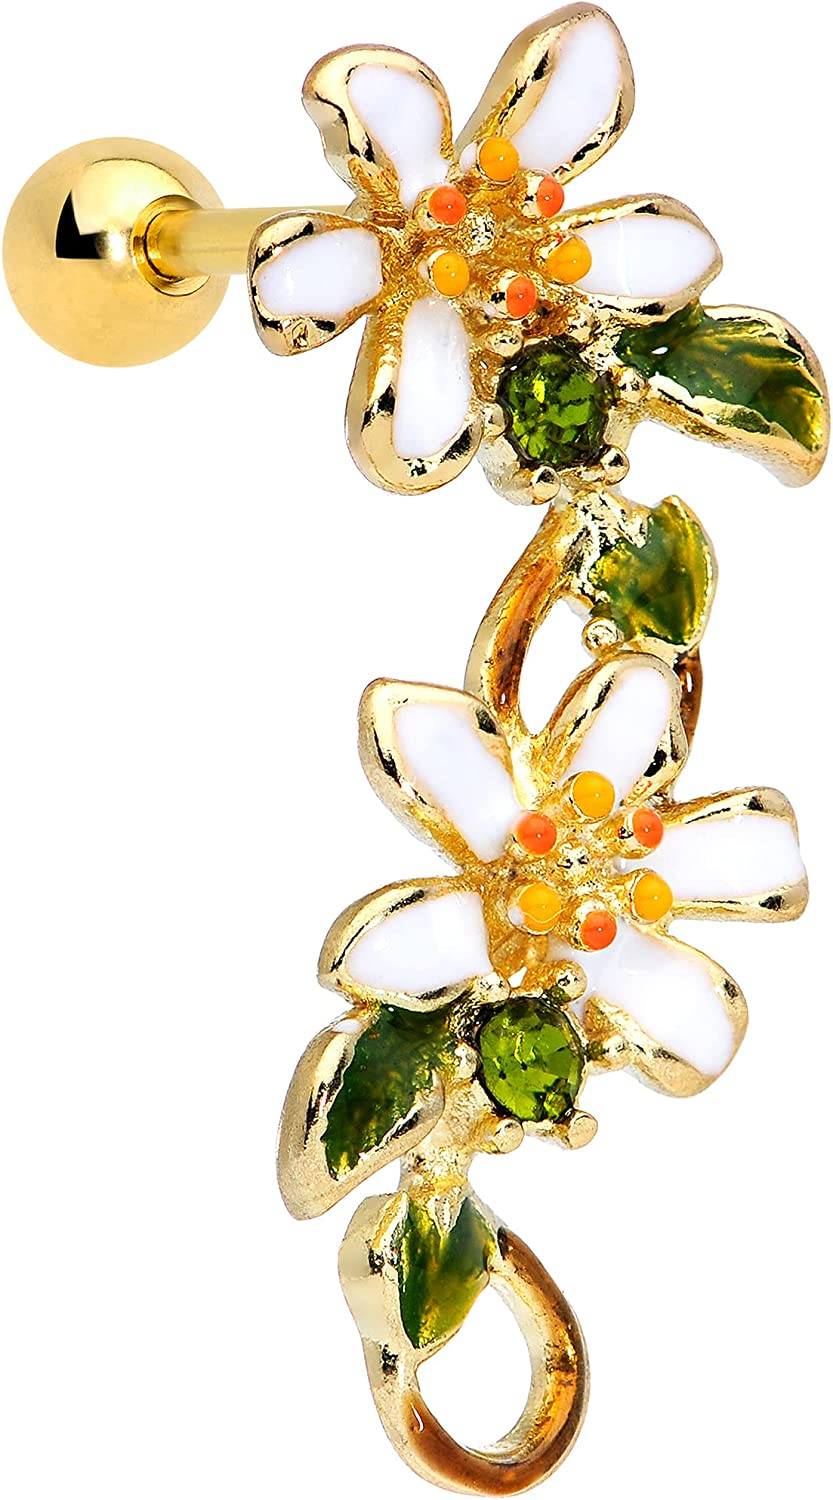 Body Candy 16G Womens PVD Steel Green Accent Daisy Flower Cartilage Earring Helix Tragus Jewelry 1/4